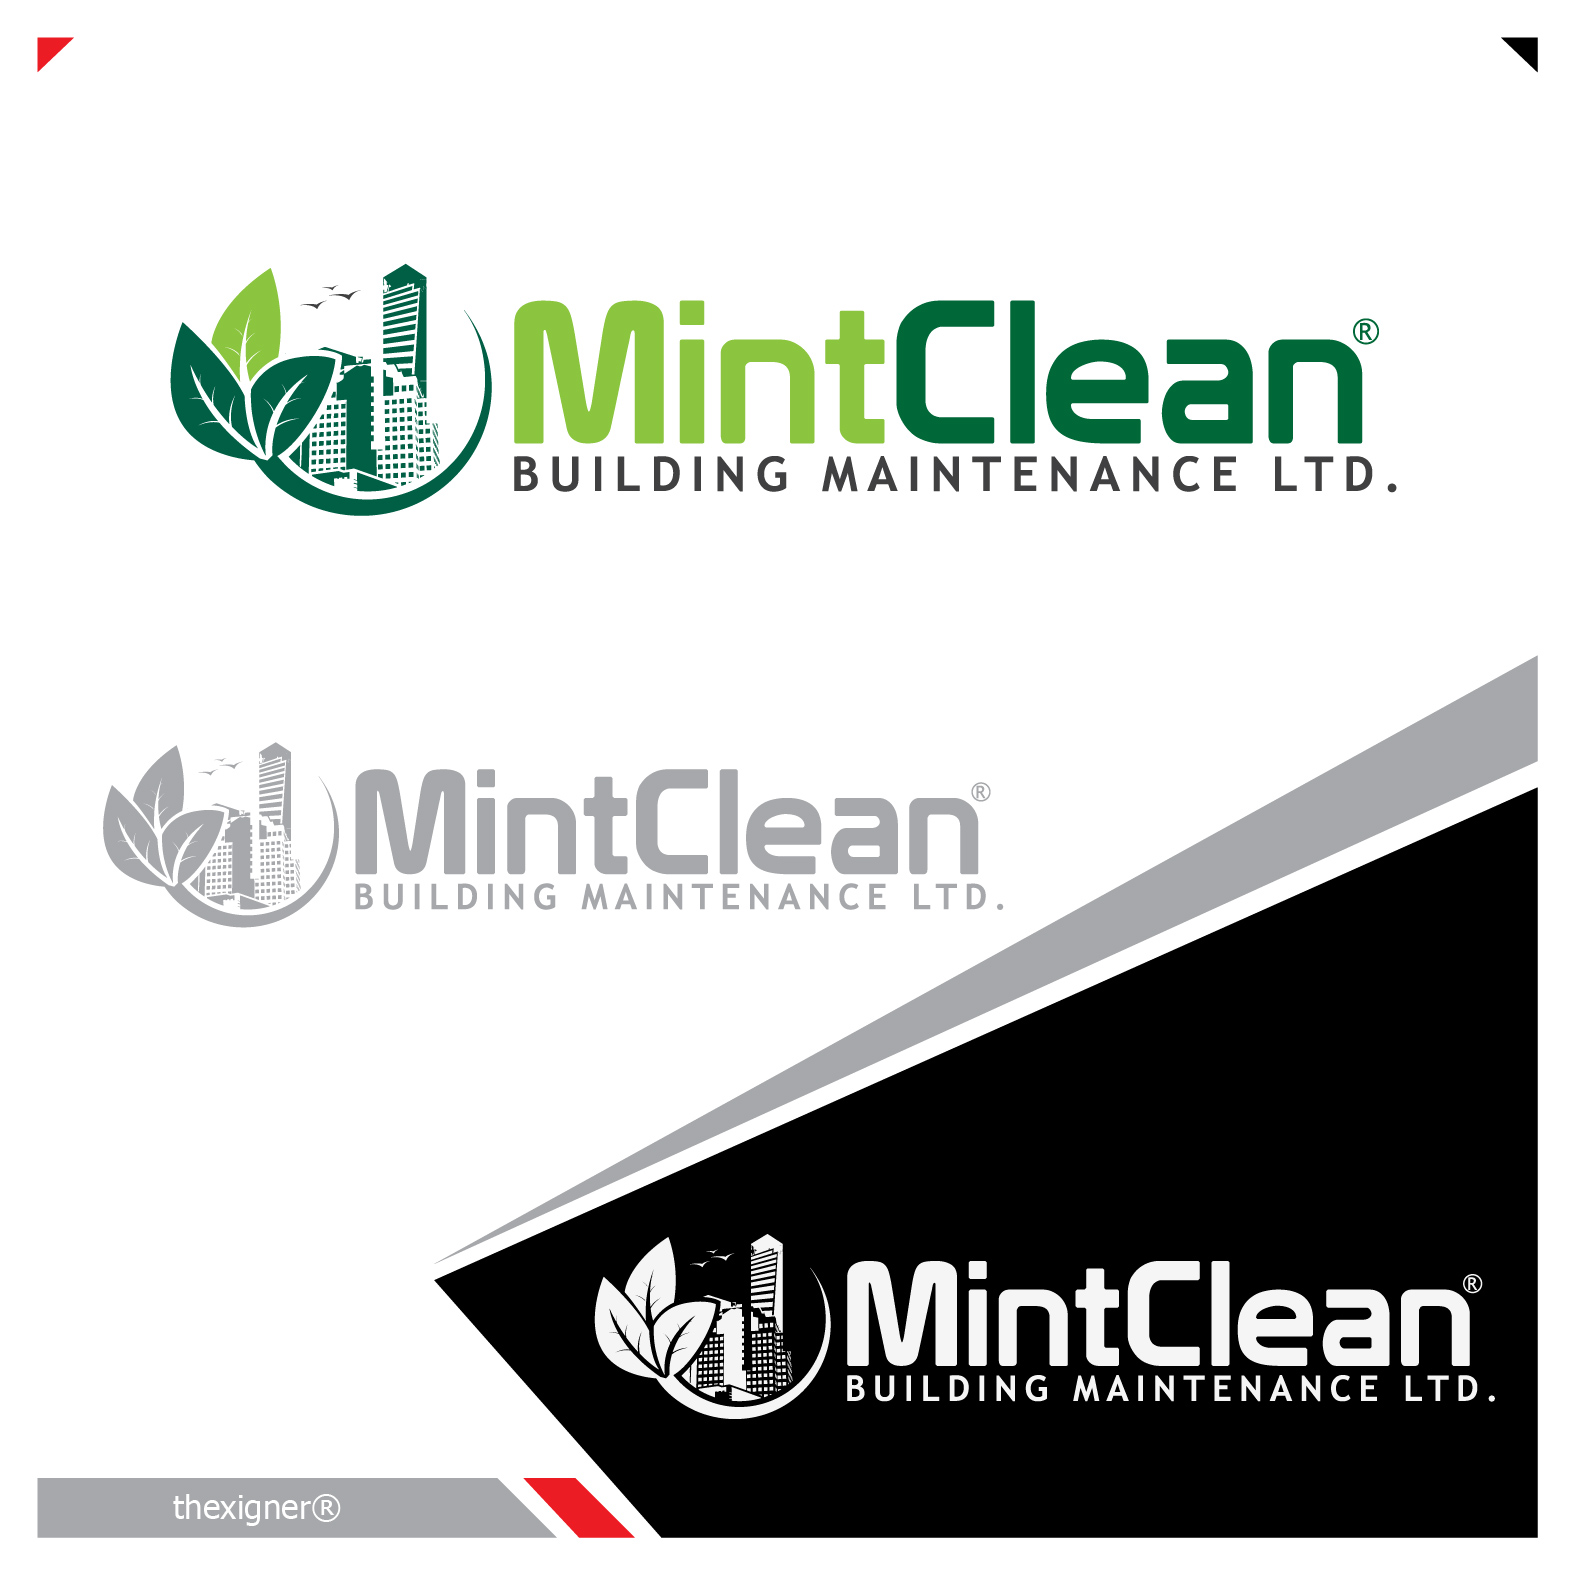 Logo Design by lagalag - Entry No. 104 in the Logo Design Contest MintClean Building Maintenance Ltd. Logo Design.